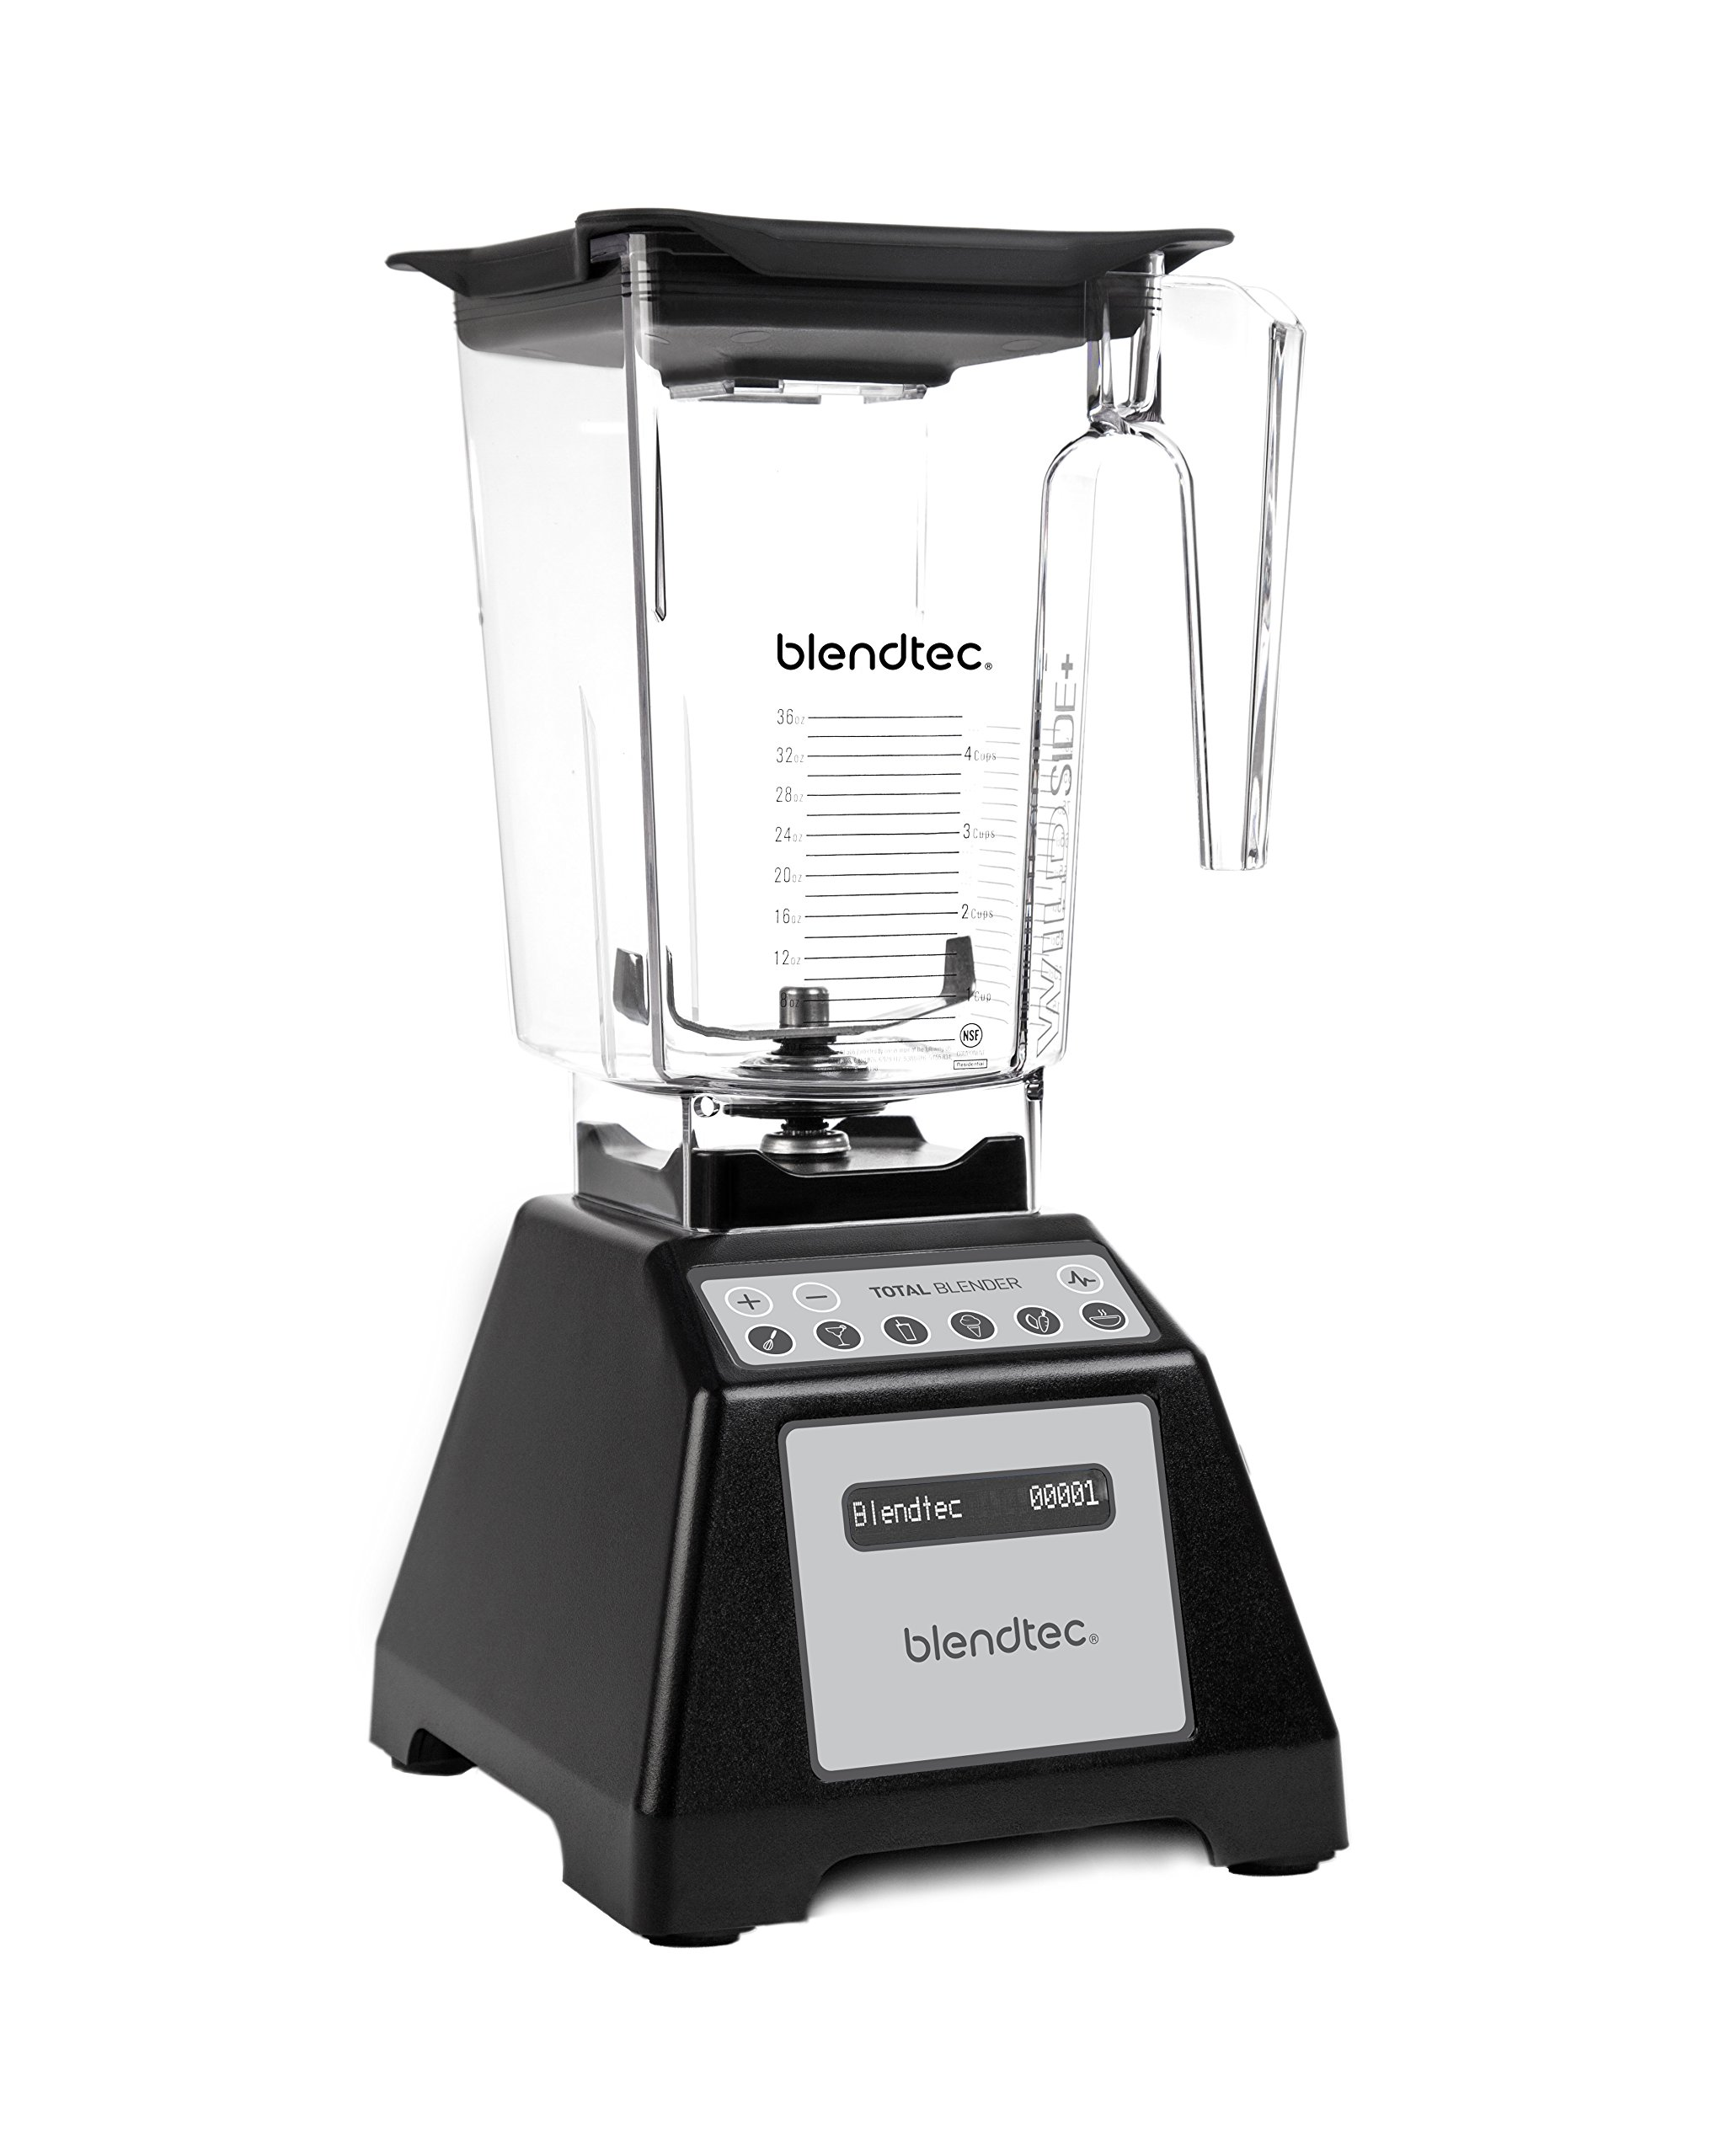 Blendtec TB-621-25 Total Blender Classic with WildSide+ Jar, Black (Certified Refurbished)